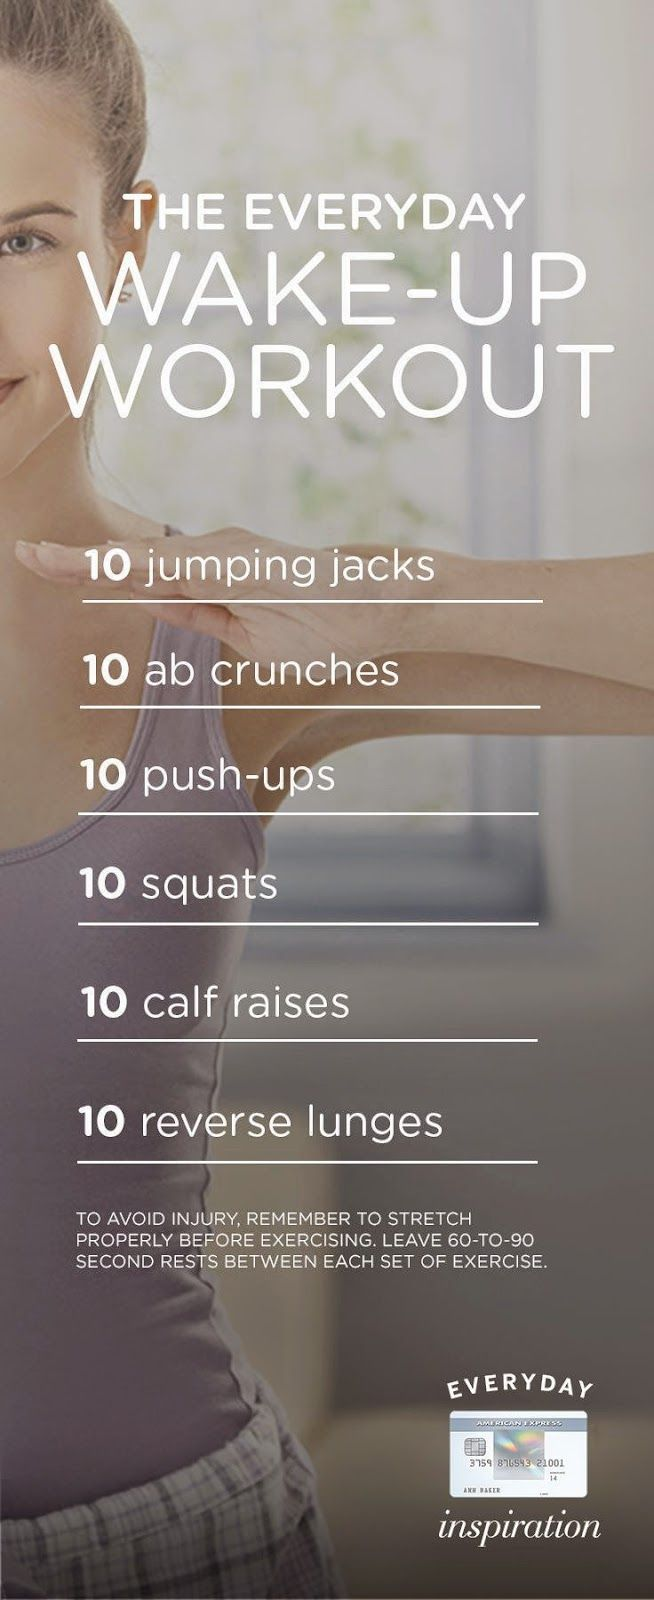 Tone up before your first morning coffee. Exercise everyday with this quick workout for a boost of energy and confidence